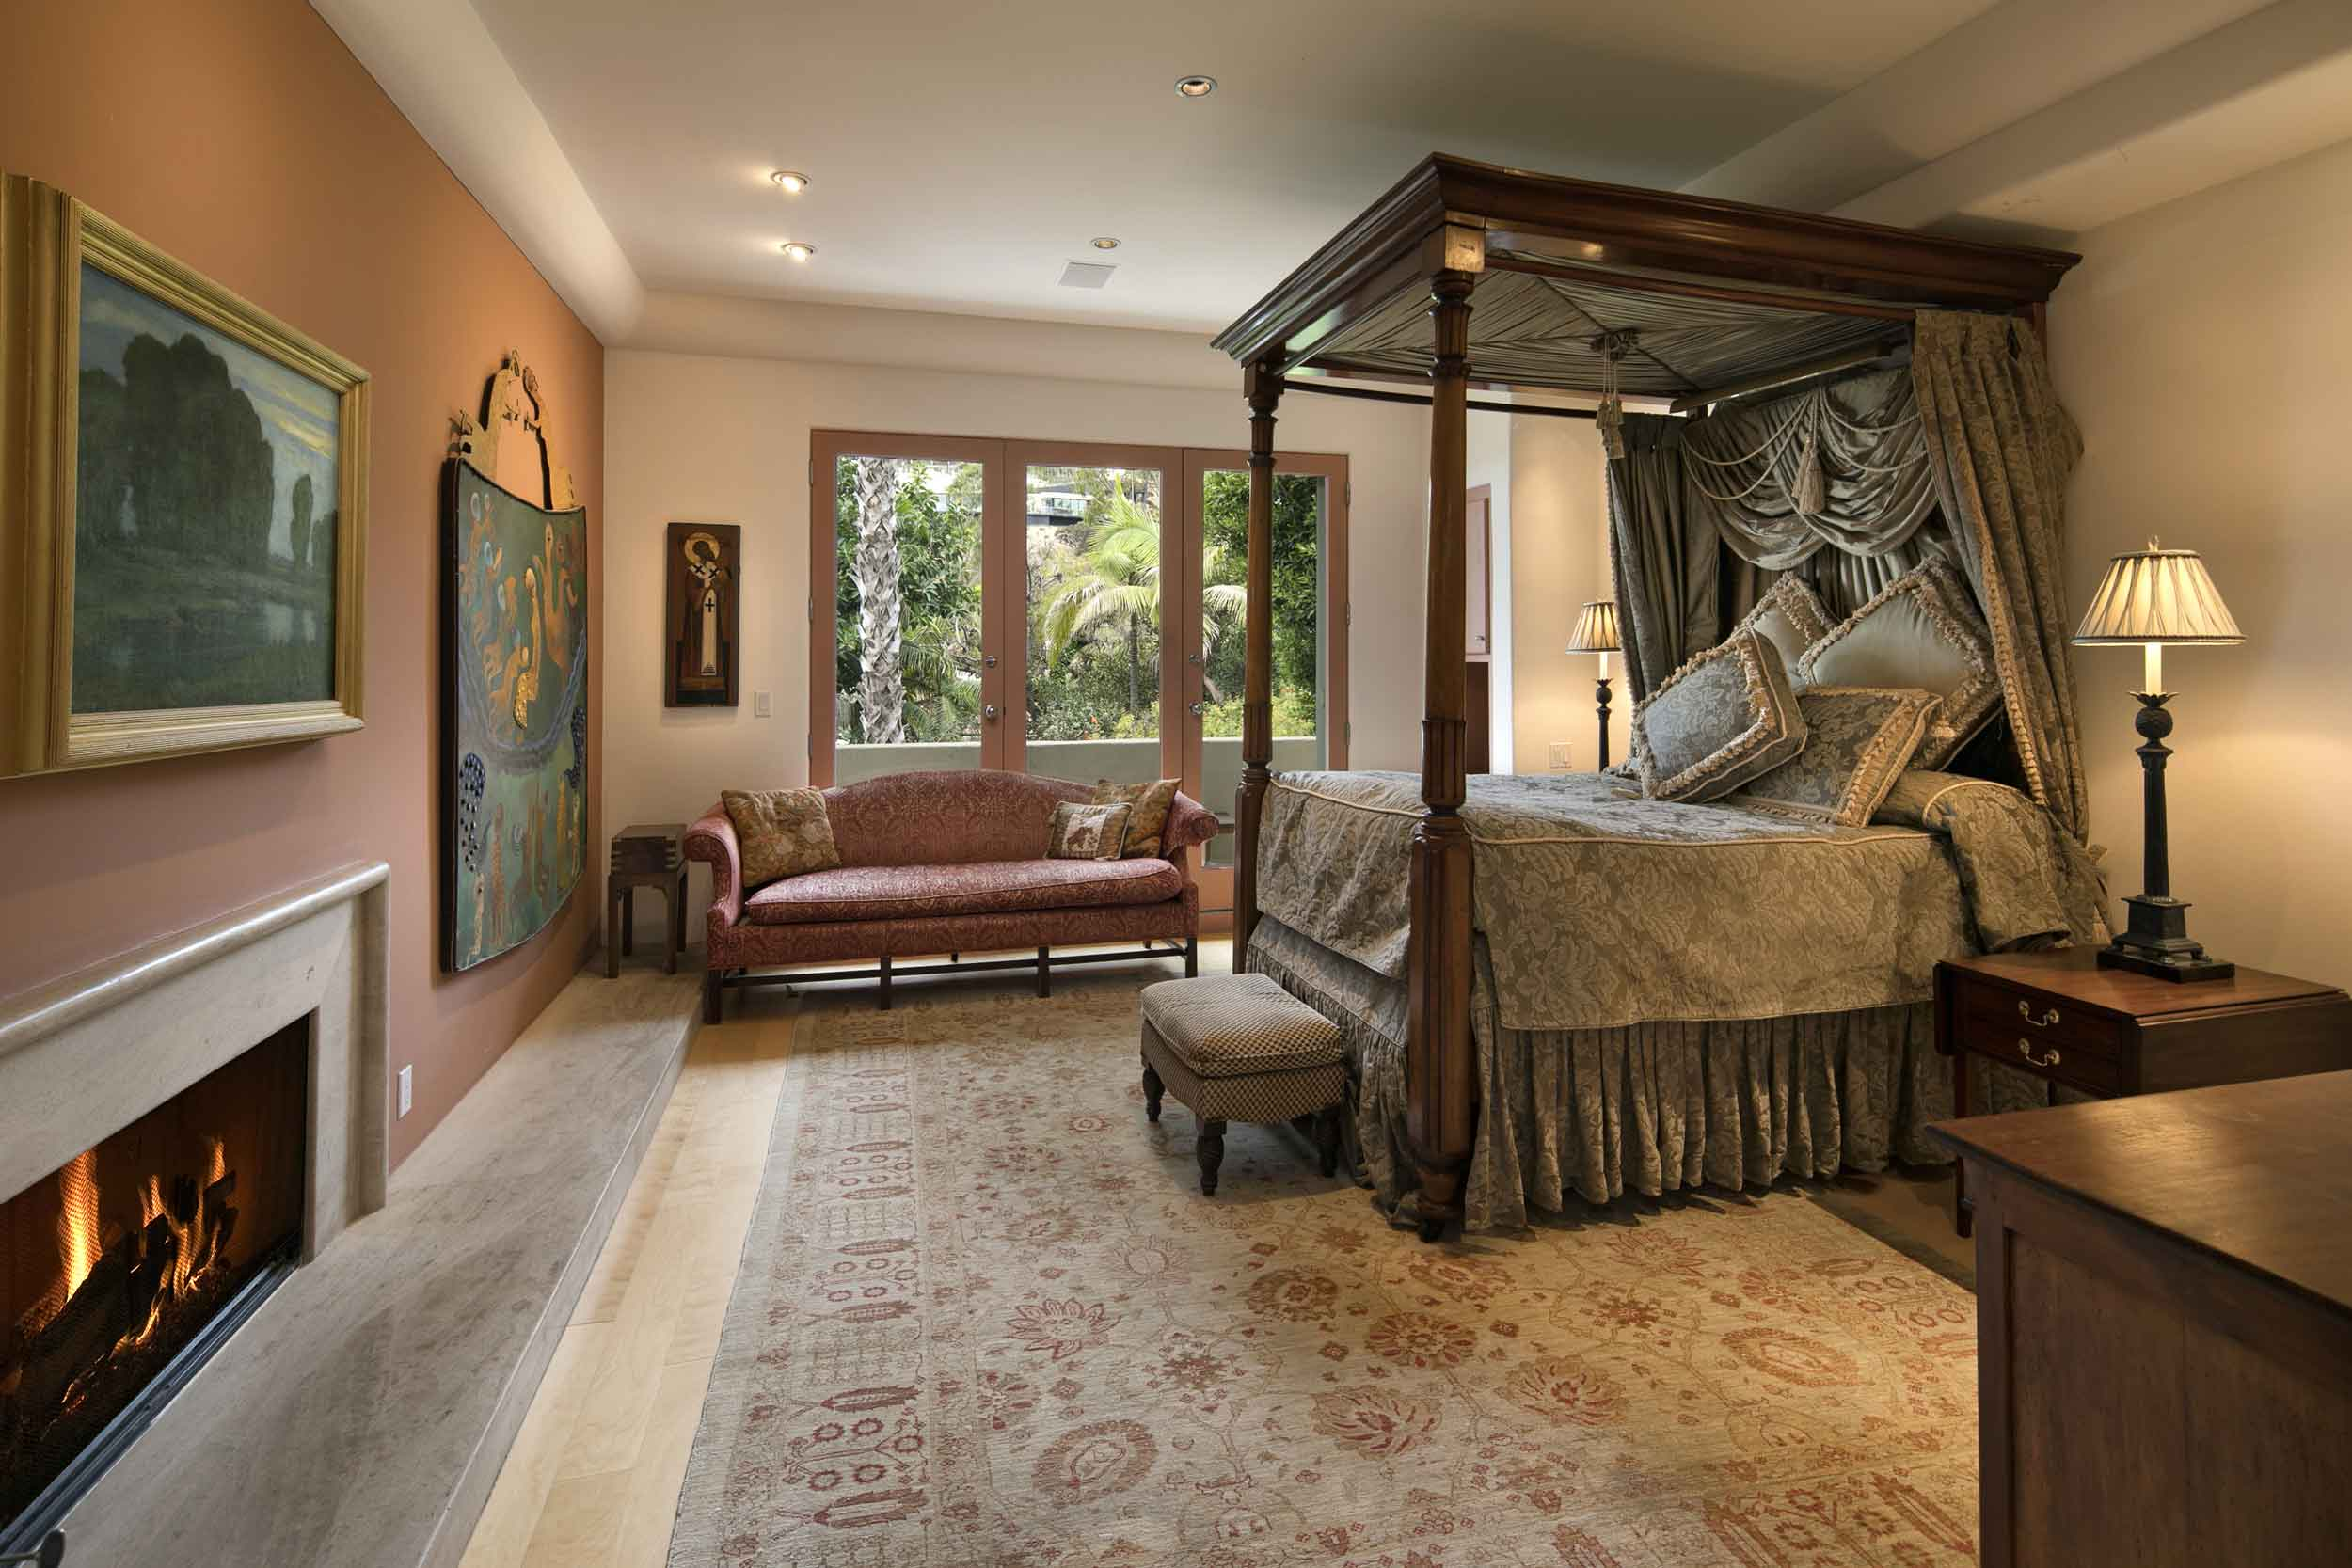 A generous second master bedroom also occupies the second floor.